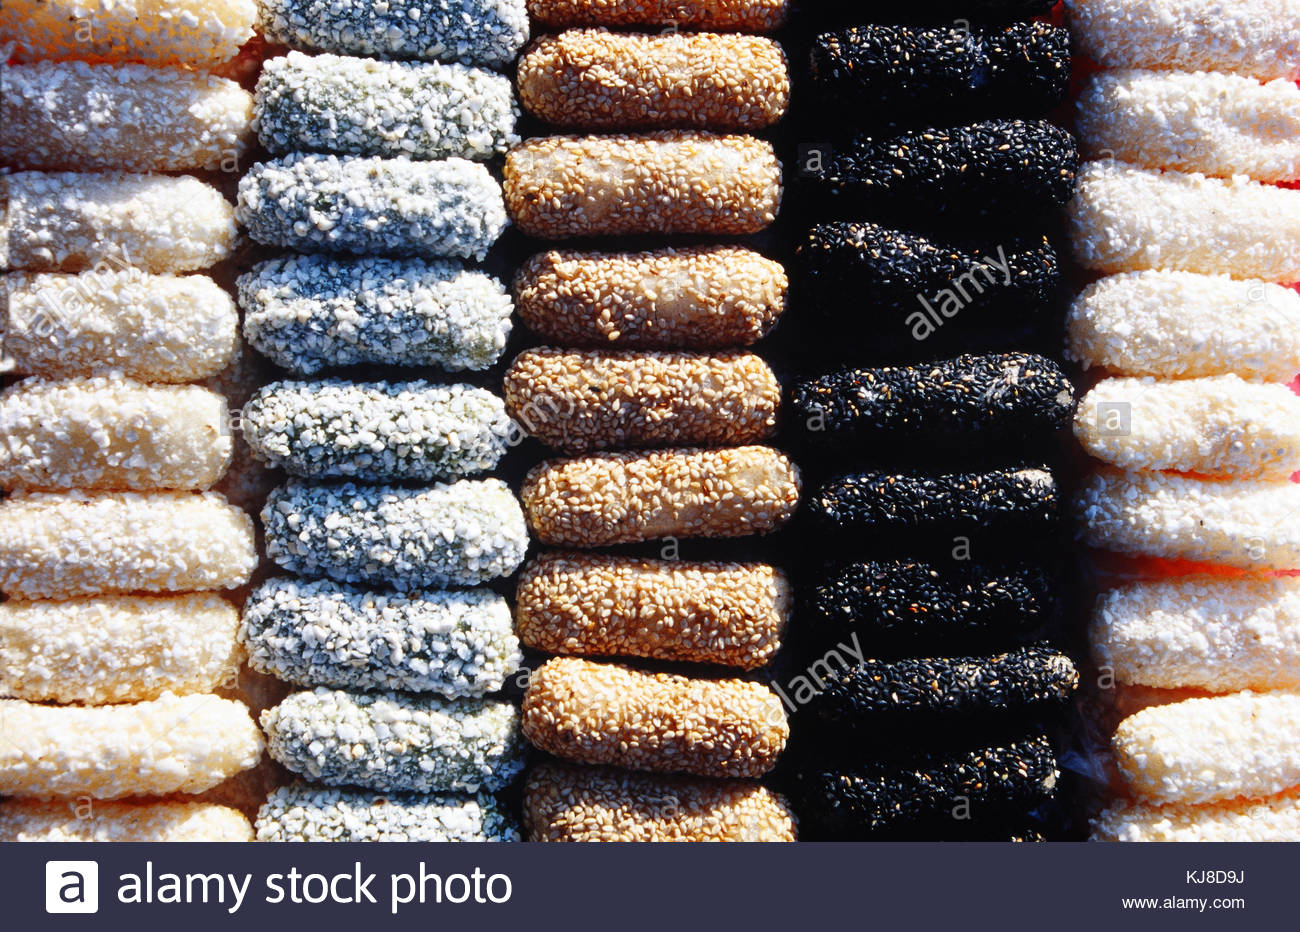 Korean traditional sweets and cookies - Stock Image